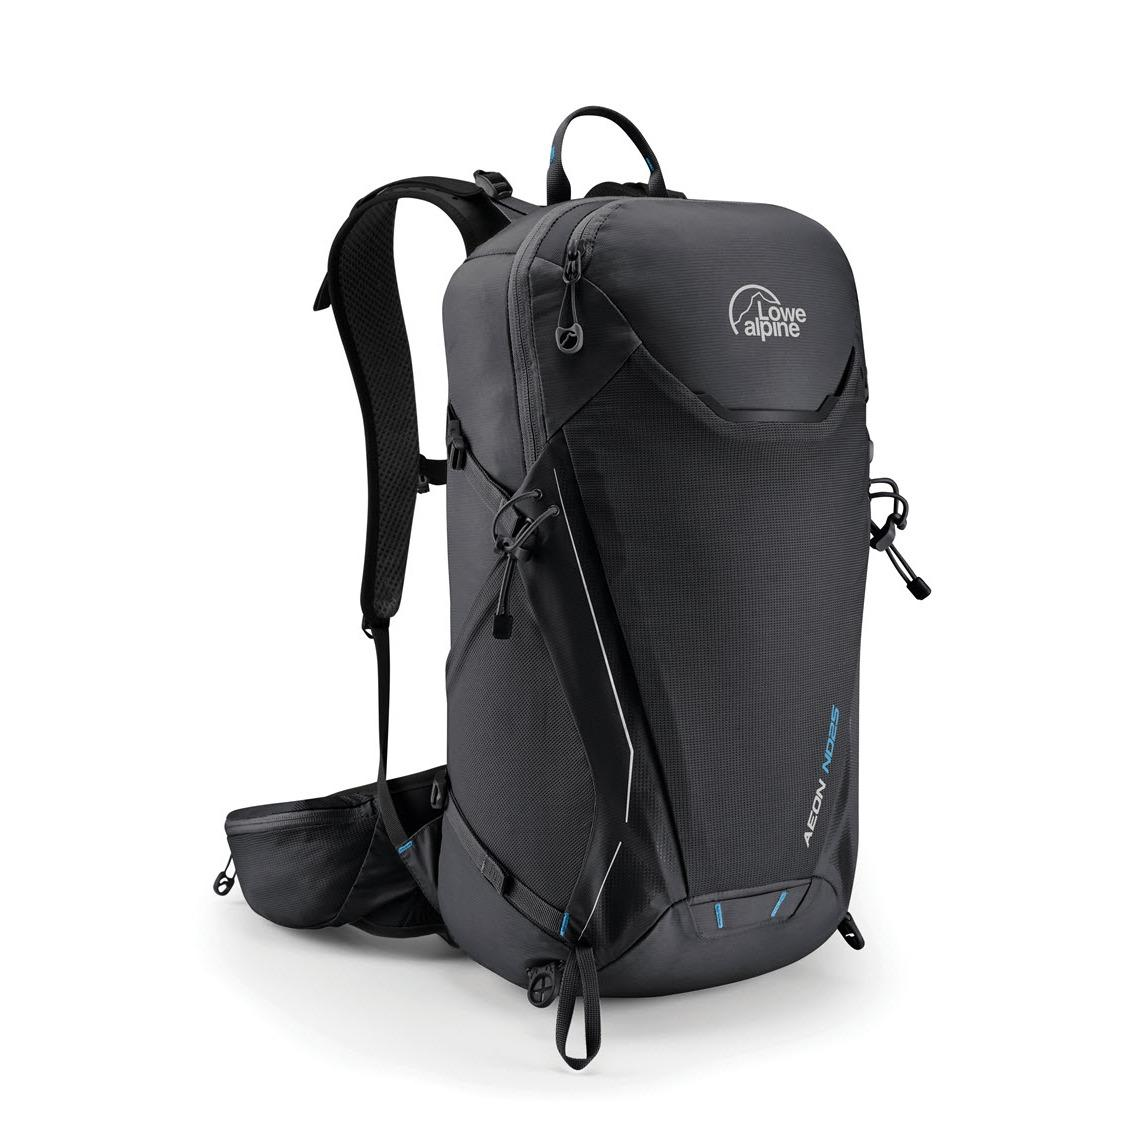 Lowe Alpine Aeon Nd25 Women Backpack Trekking Hiking Travel Anthracite Colour Discount Code